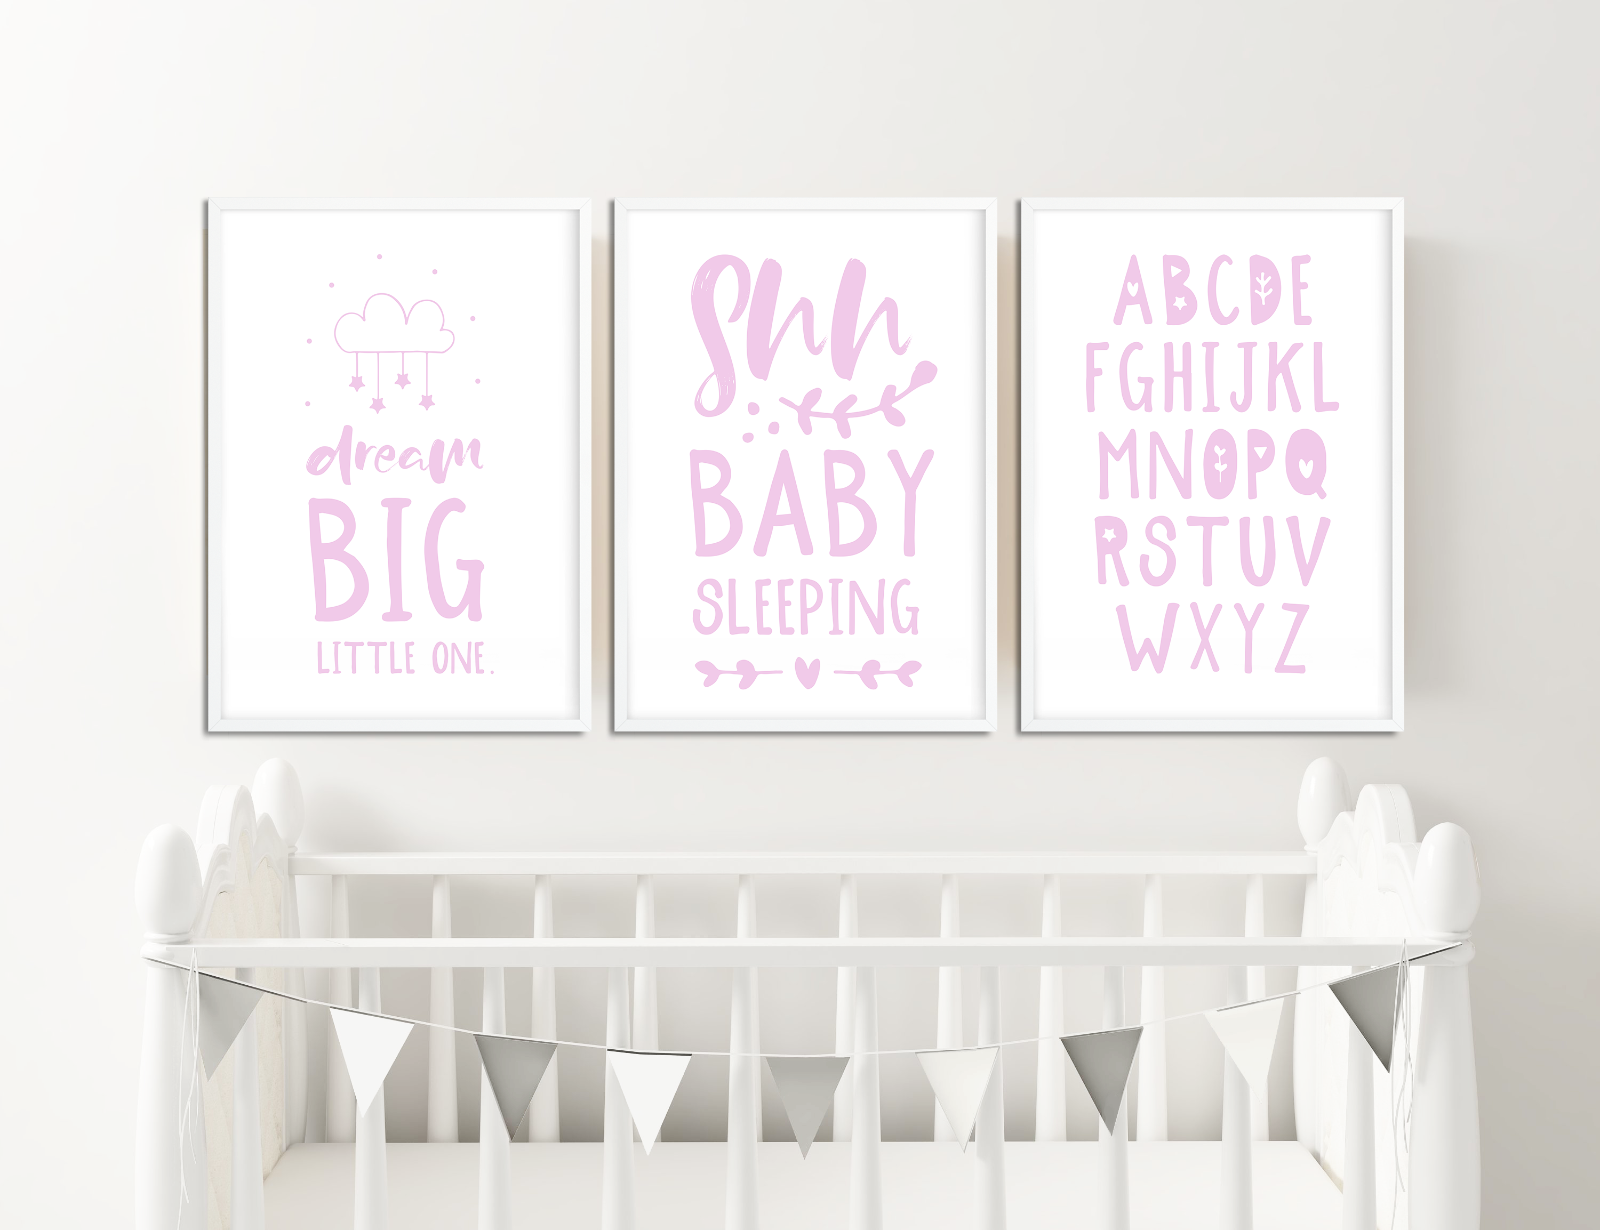 Details about Pink Nursery Prints for Girls Bedroom Pictures Baby Room  Decor Ideas Baby Gift